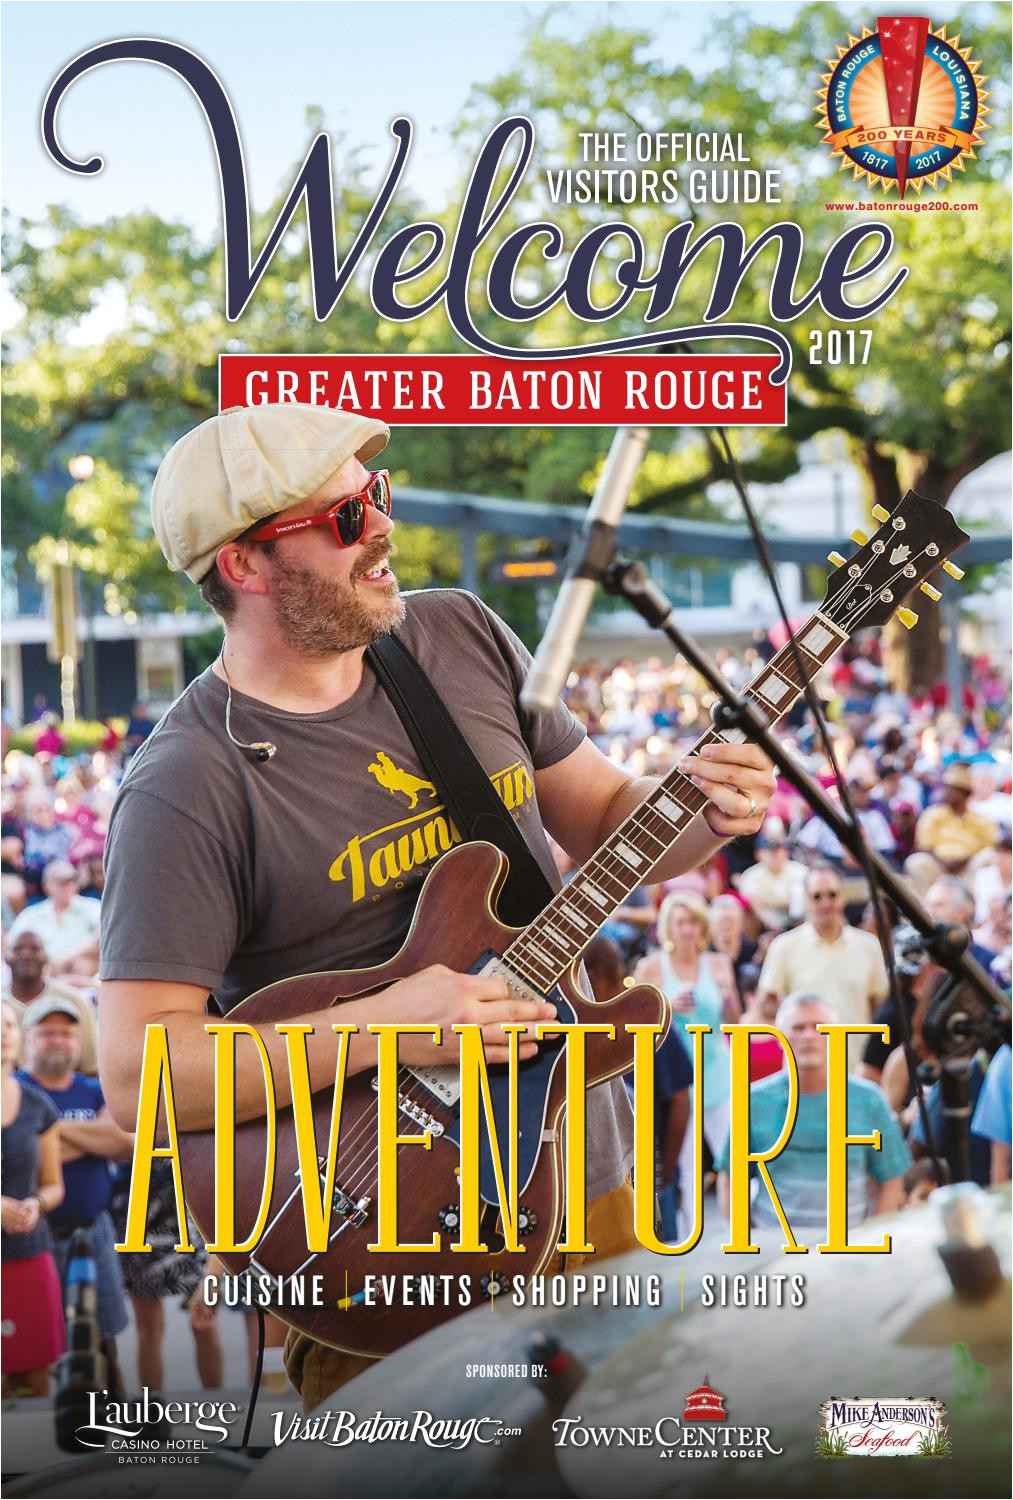 2017 welcome the official visitors guide to greater baton rouge by baton rouge business report issuu